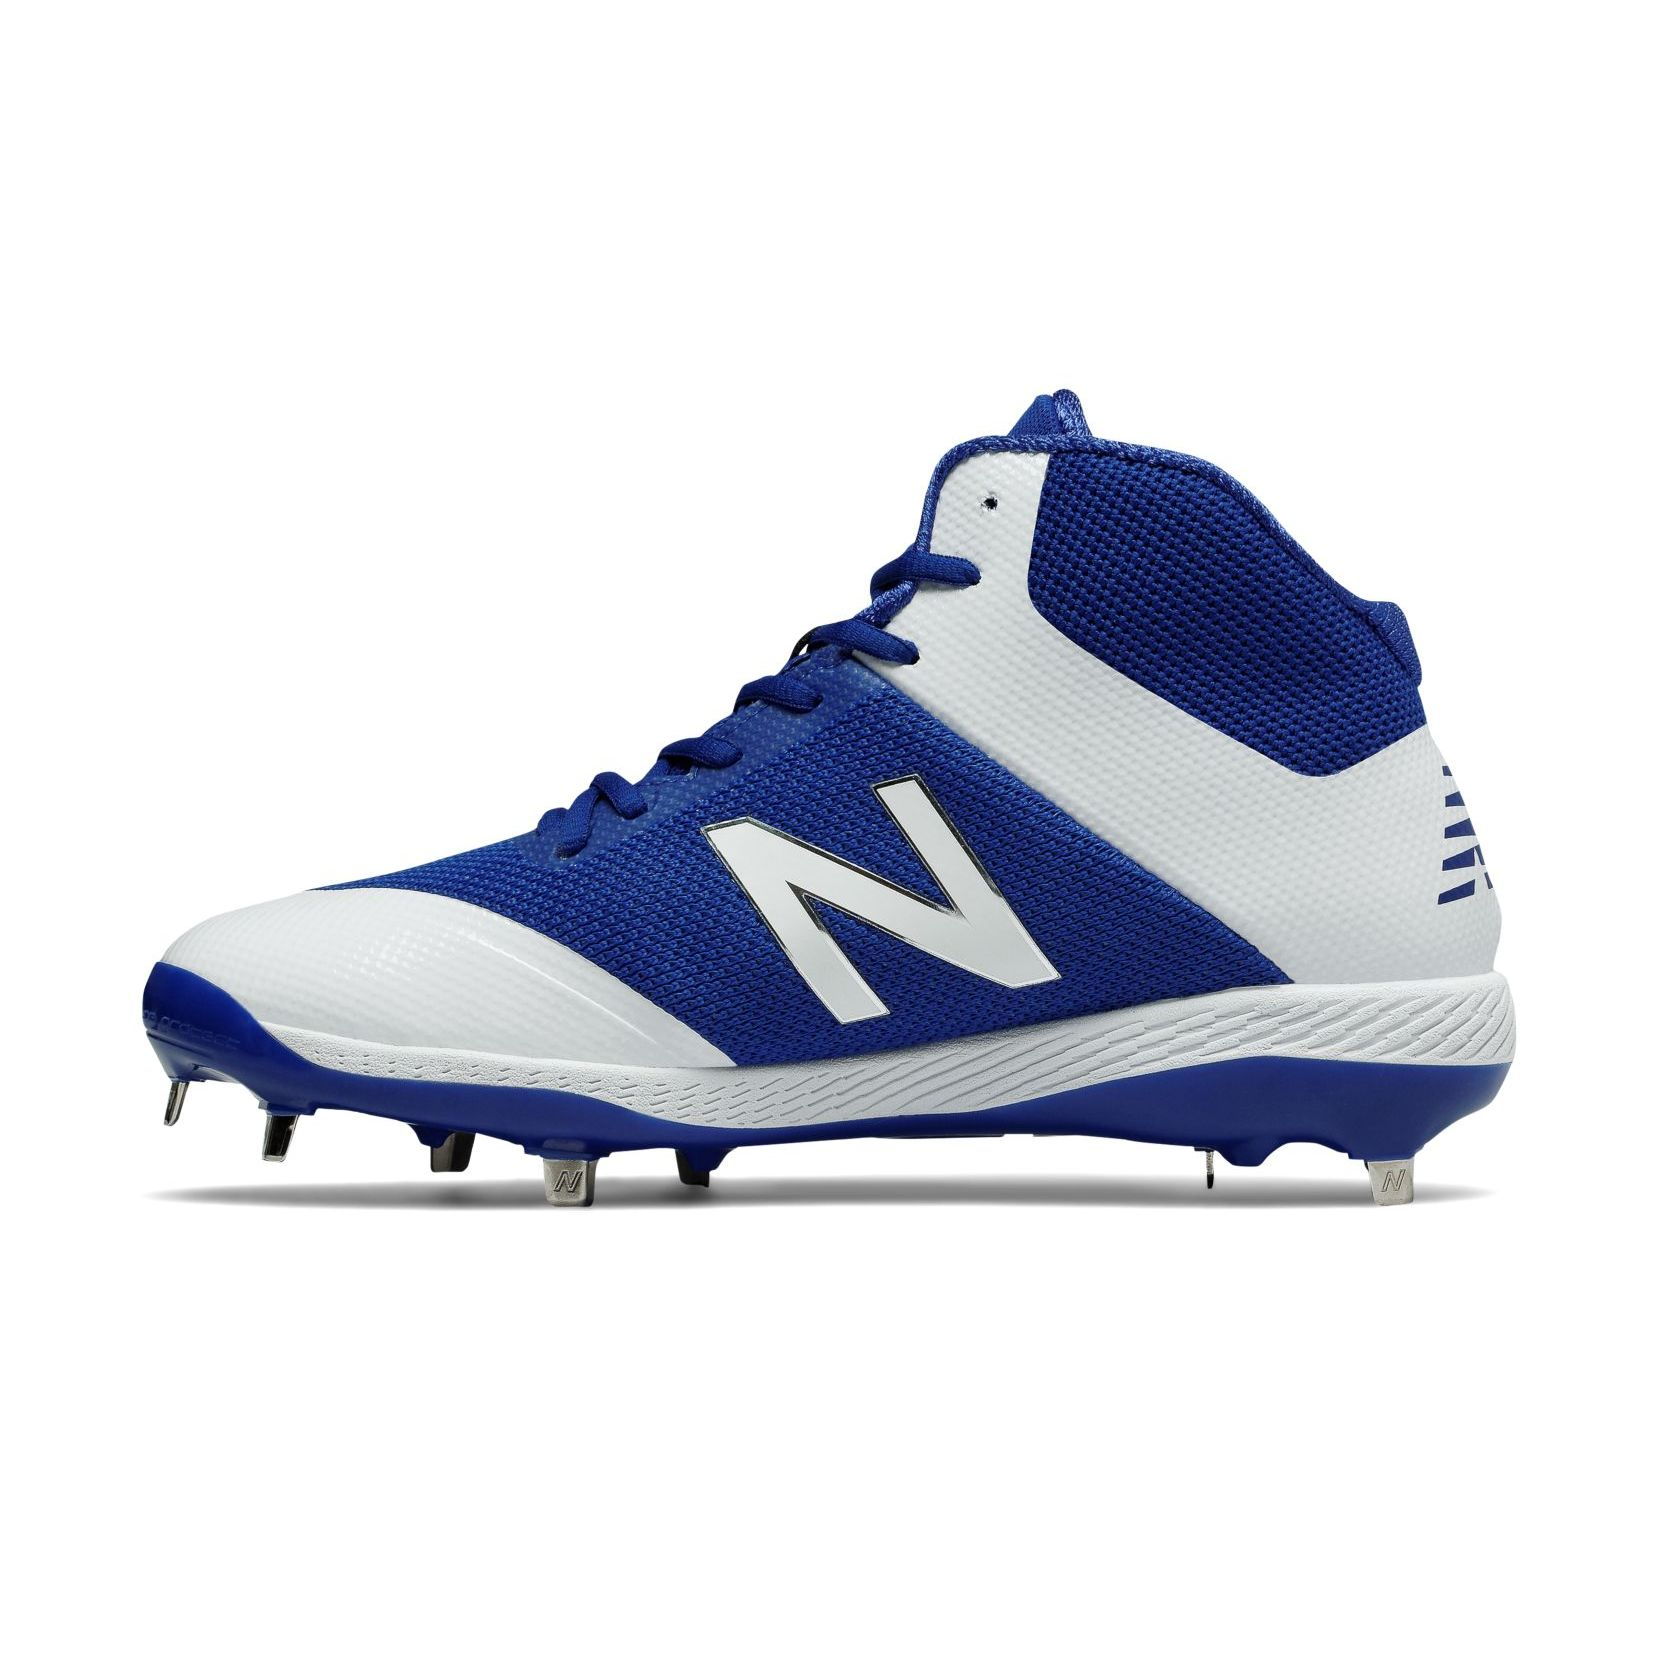 New Balance Mid Cut M4040tb4 Metal Cleat